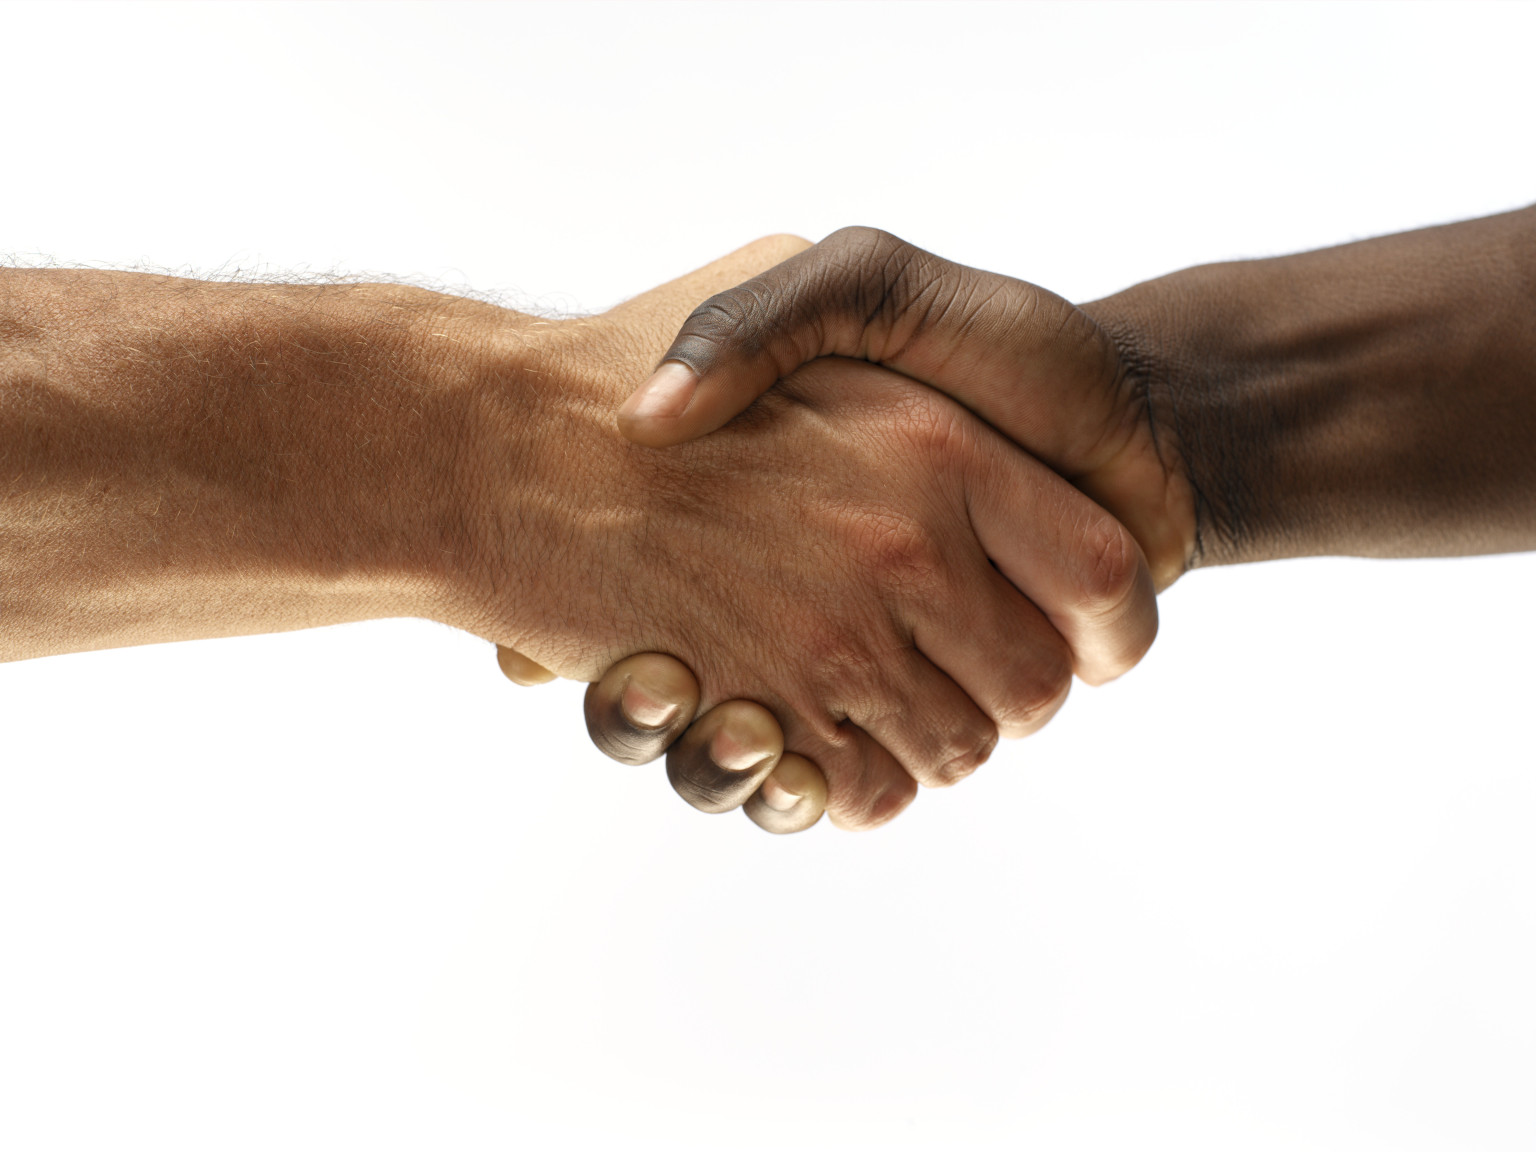 3491941-black-and-white-people-shaking-hands.jpg